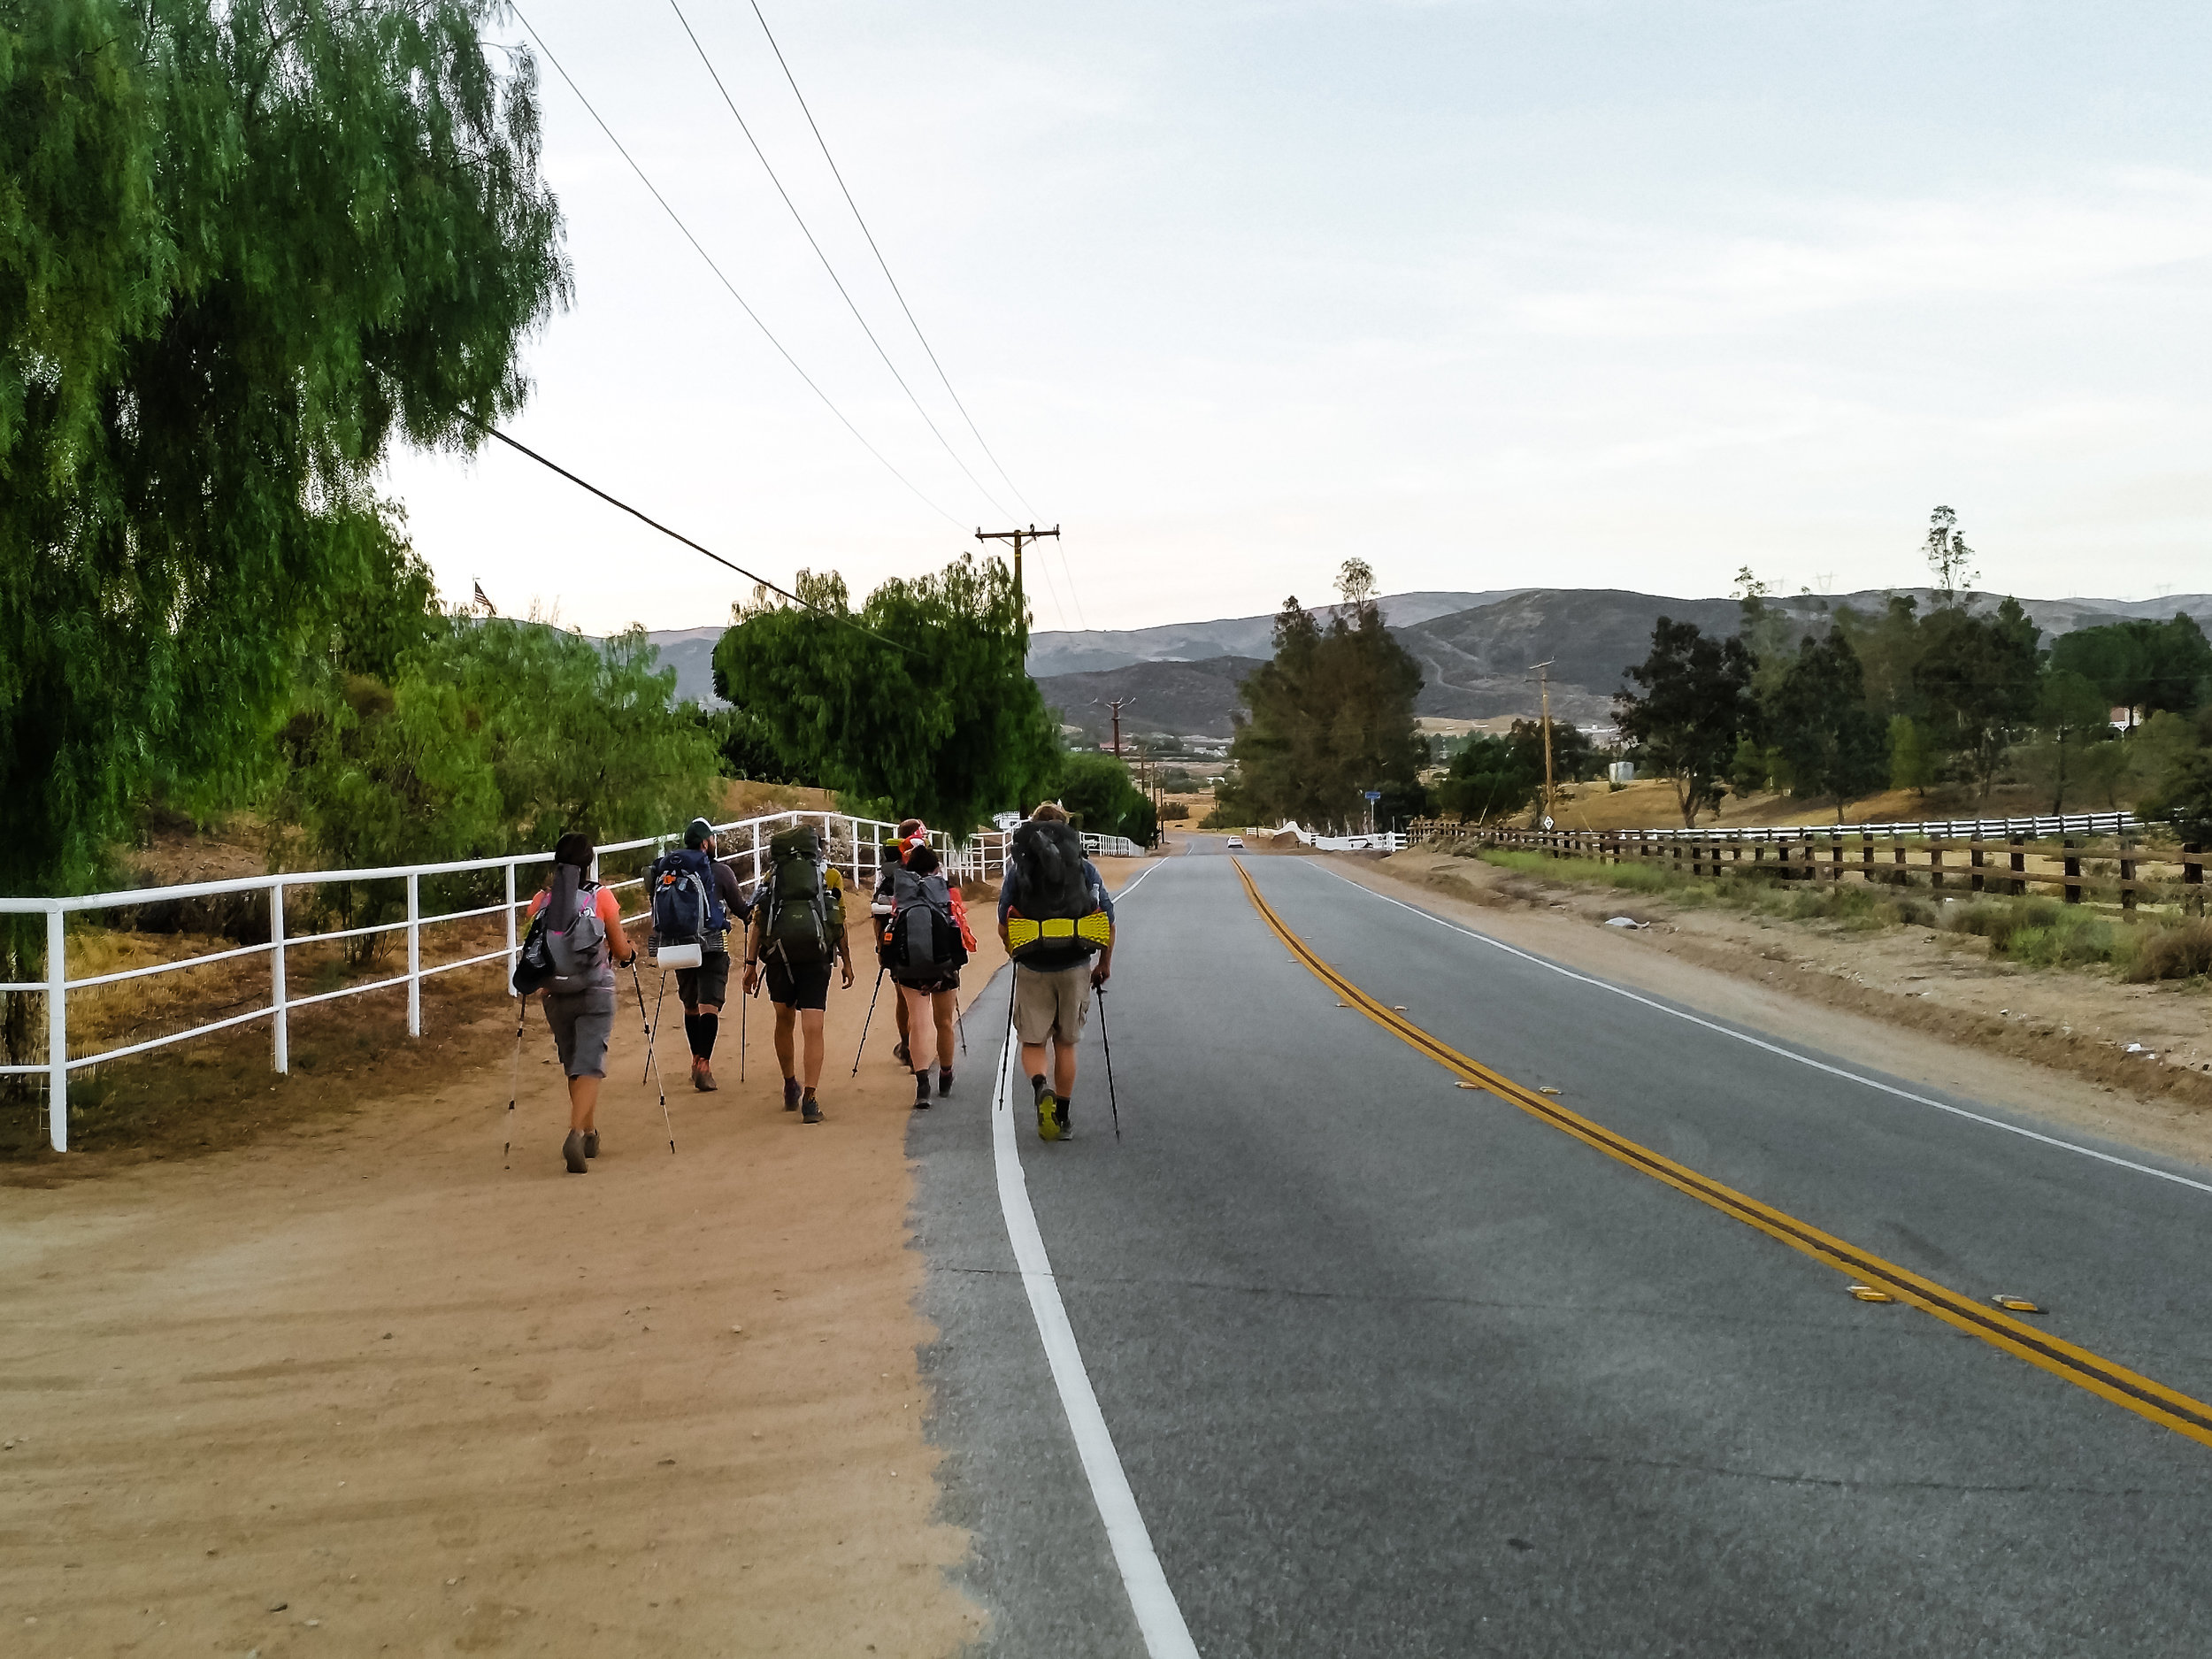 Leaving Agua Dulce and switching to night hiking to avoid the heat